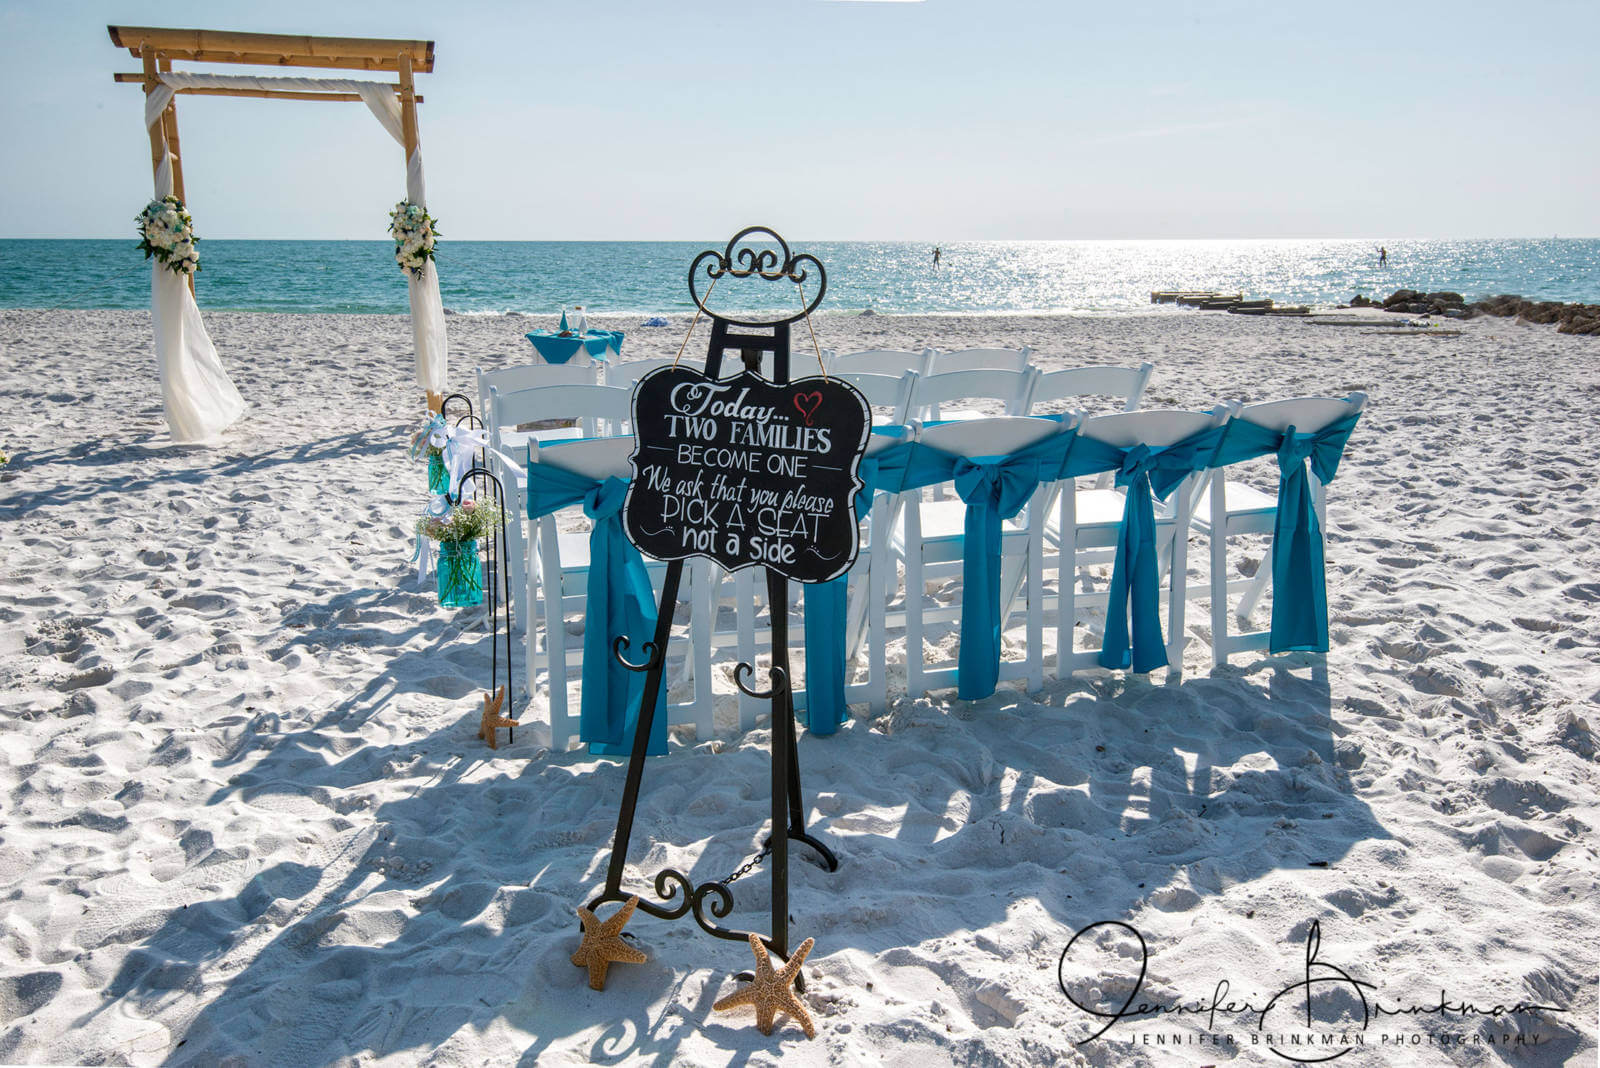 The sunny climate, beautiful white sandy beaches, flaming sunsets, professional photographers, florists, top caterers, and superb resorts make it easy to plan your dream beach wedding in Southwest Florida. | MustDo.com